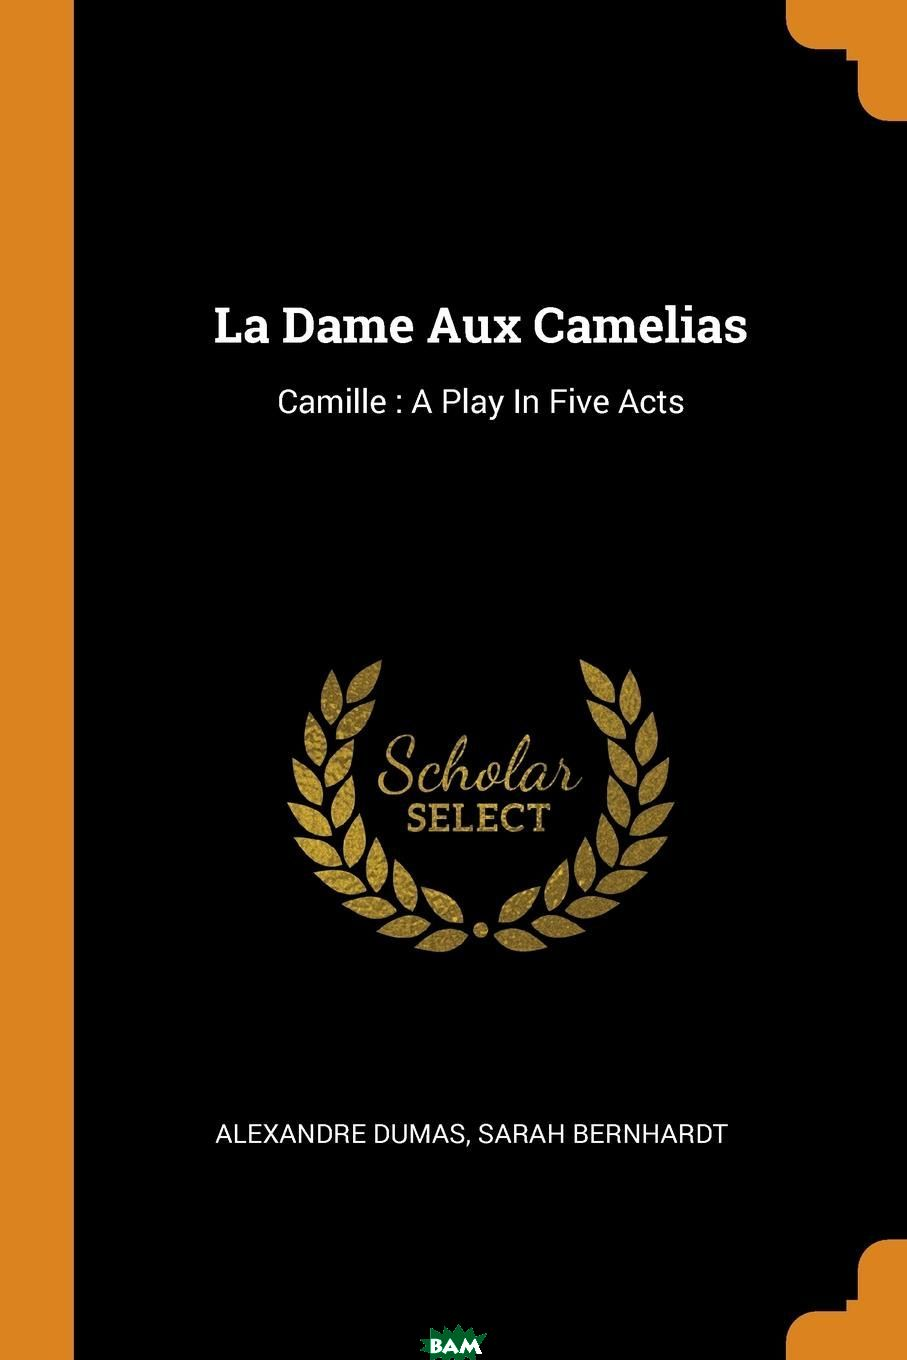 Купить La Dame Aux Camelias. Camille : A Play In Five Acts, Александр Дюма, Sarah Bernhardt, 9780353441651